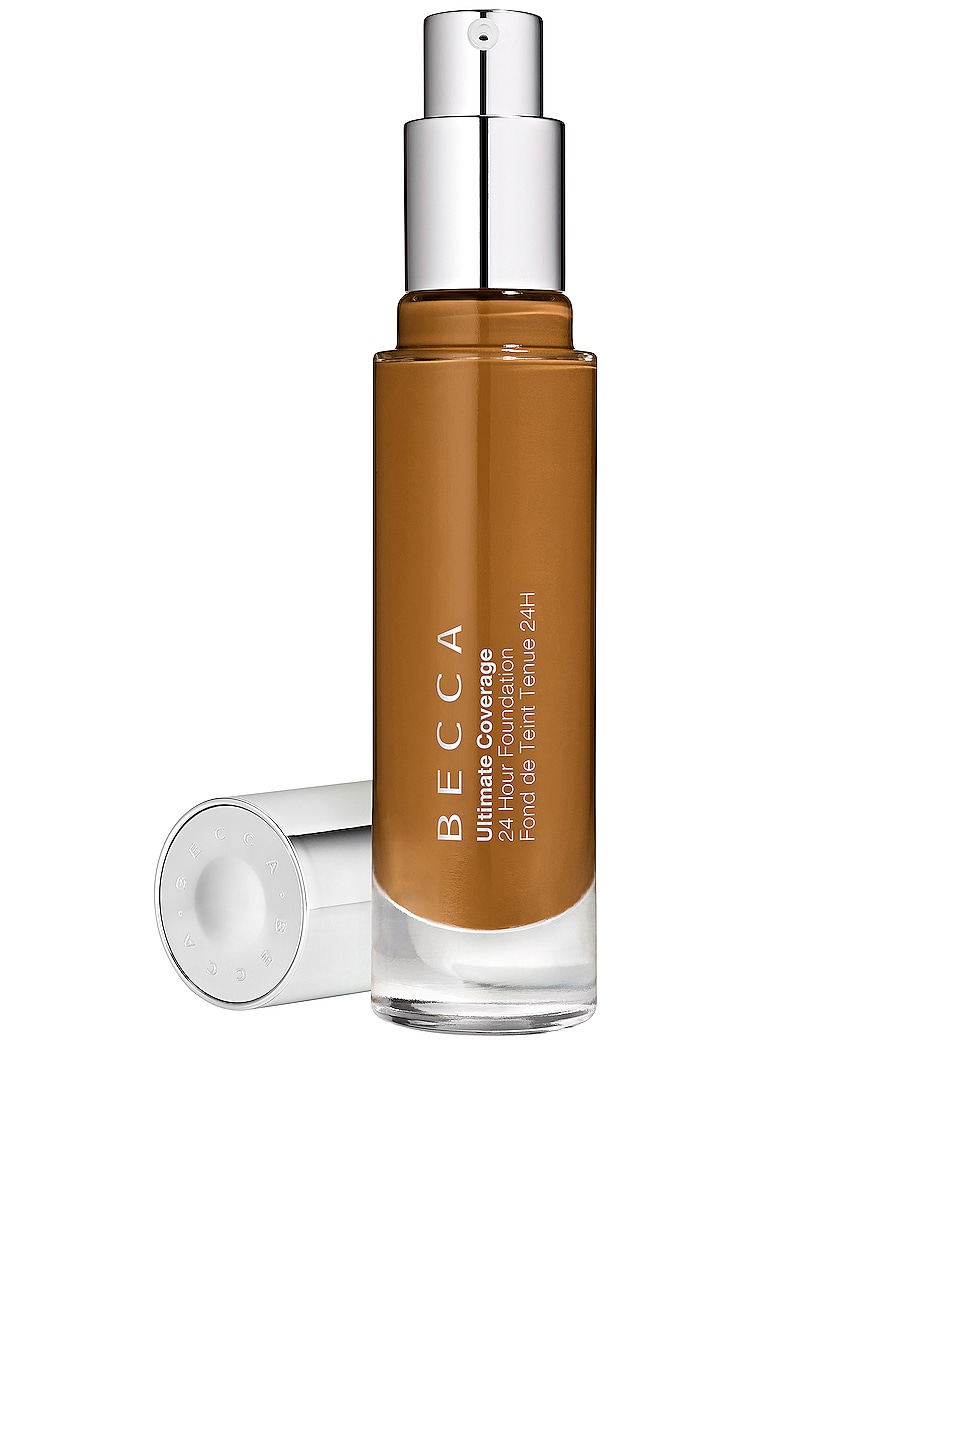 BECCA Ultimate Coverage 24 Hour Foundation in Maple